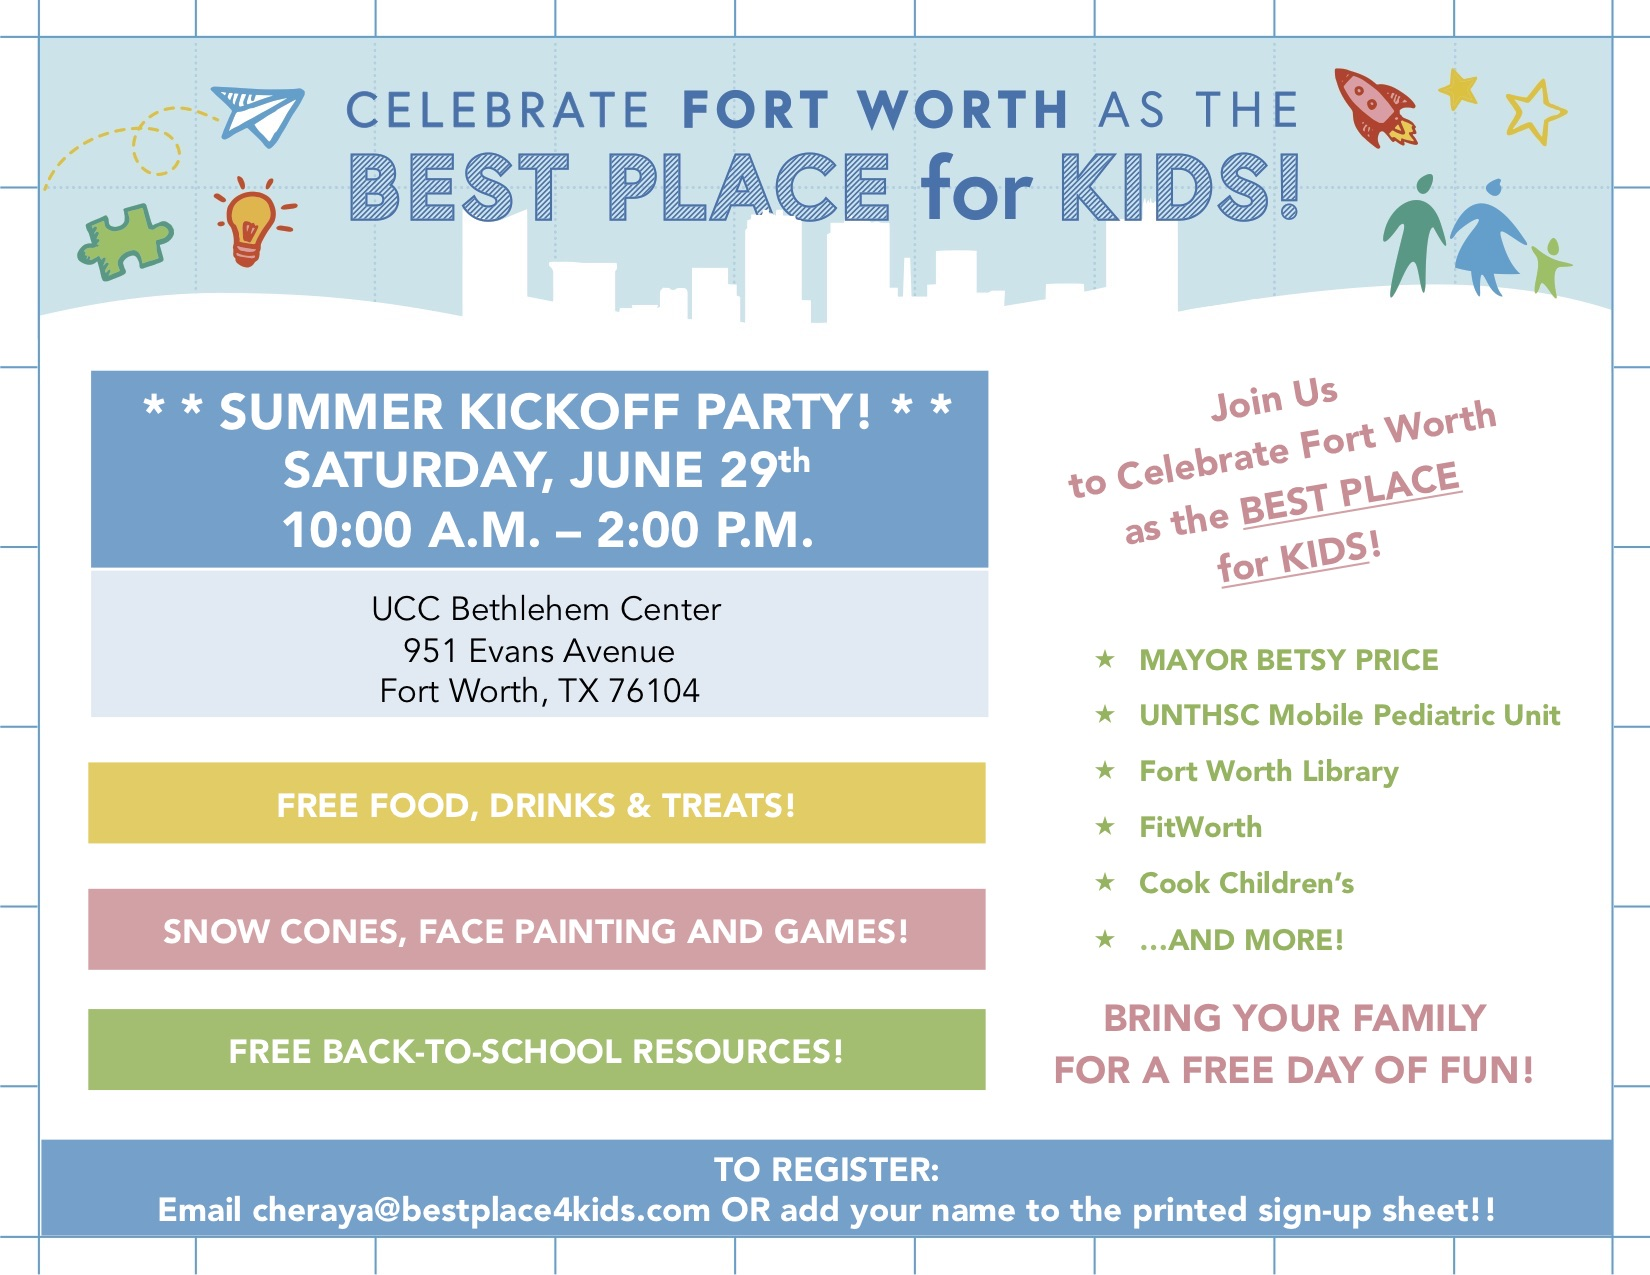 Best_Place_Summer_KickOff_Party_Flyer_6_29_19_FINAL copy.jpg